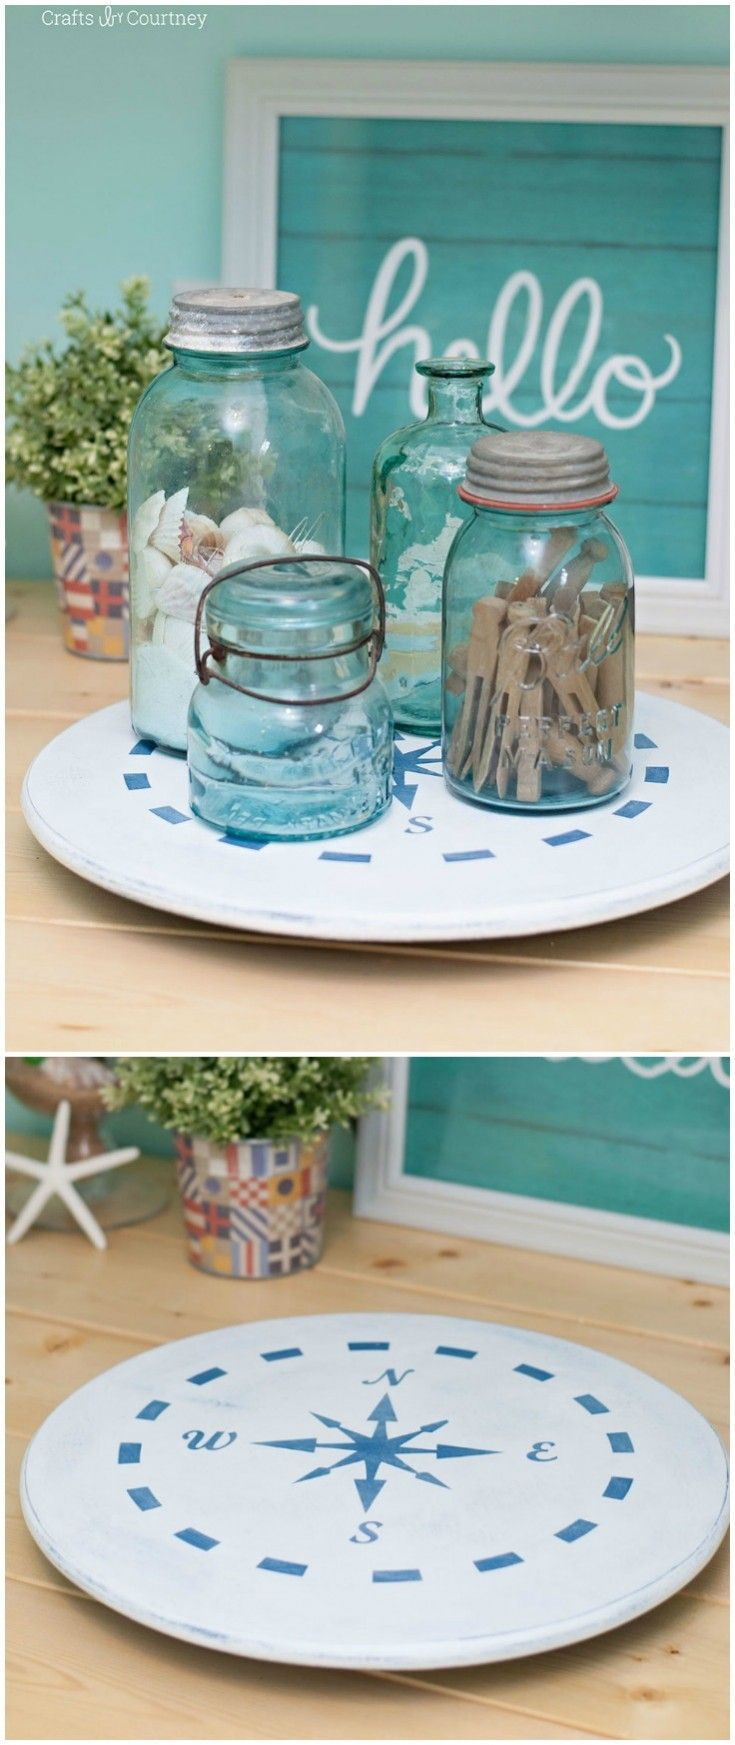 165 best coastal style images on pinterest beach houses for the ikea diy lazy susan makeover nautical craftnautical solutioingenieria Image collections